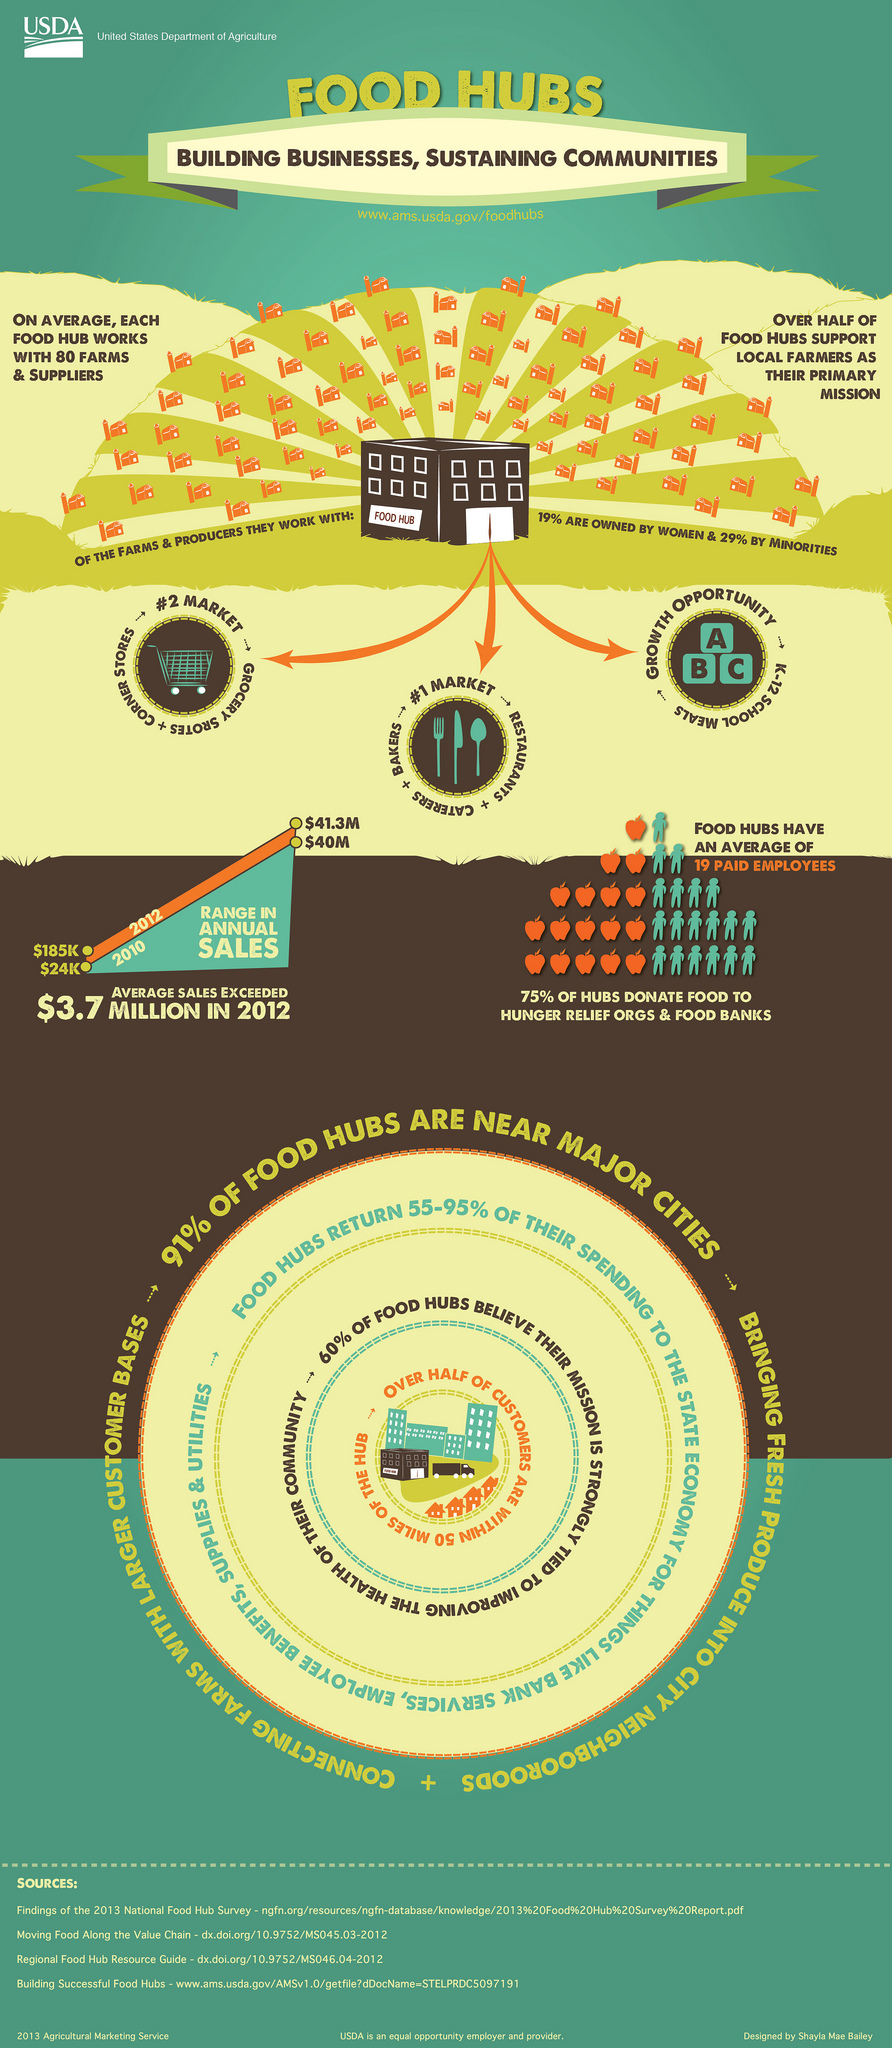 usda food hub infographic click to see larger image